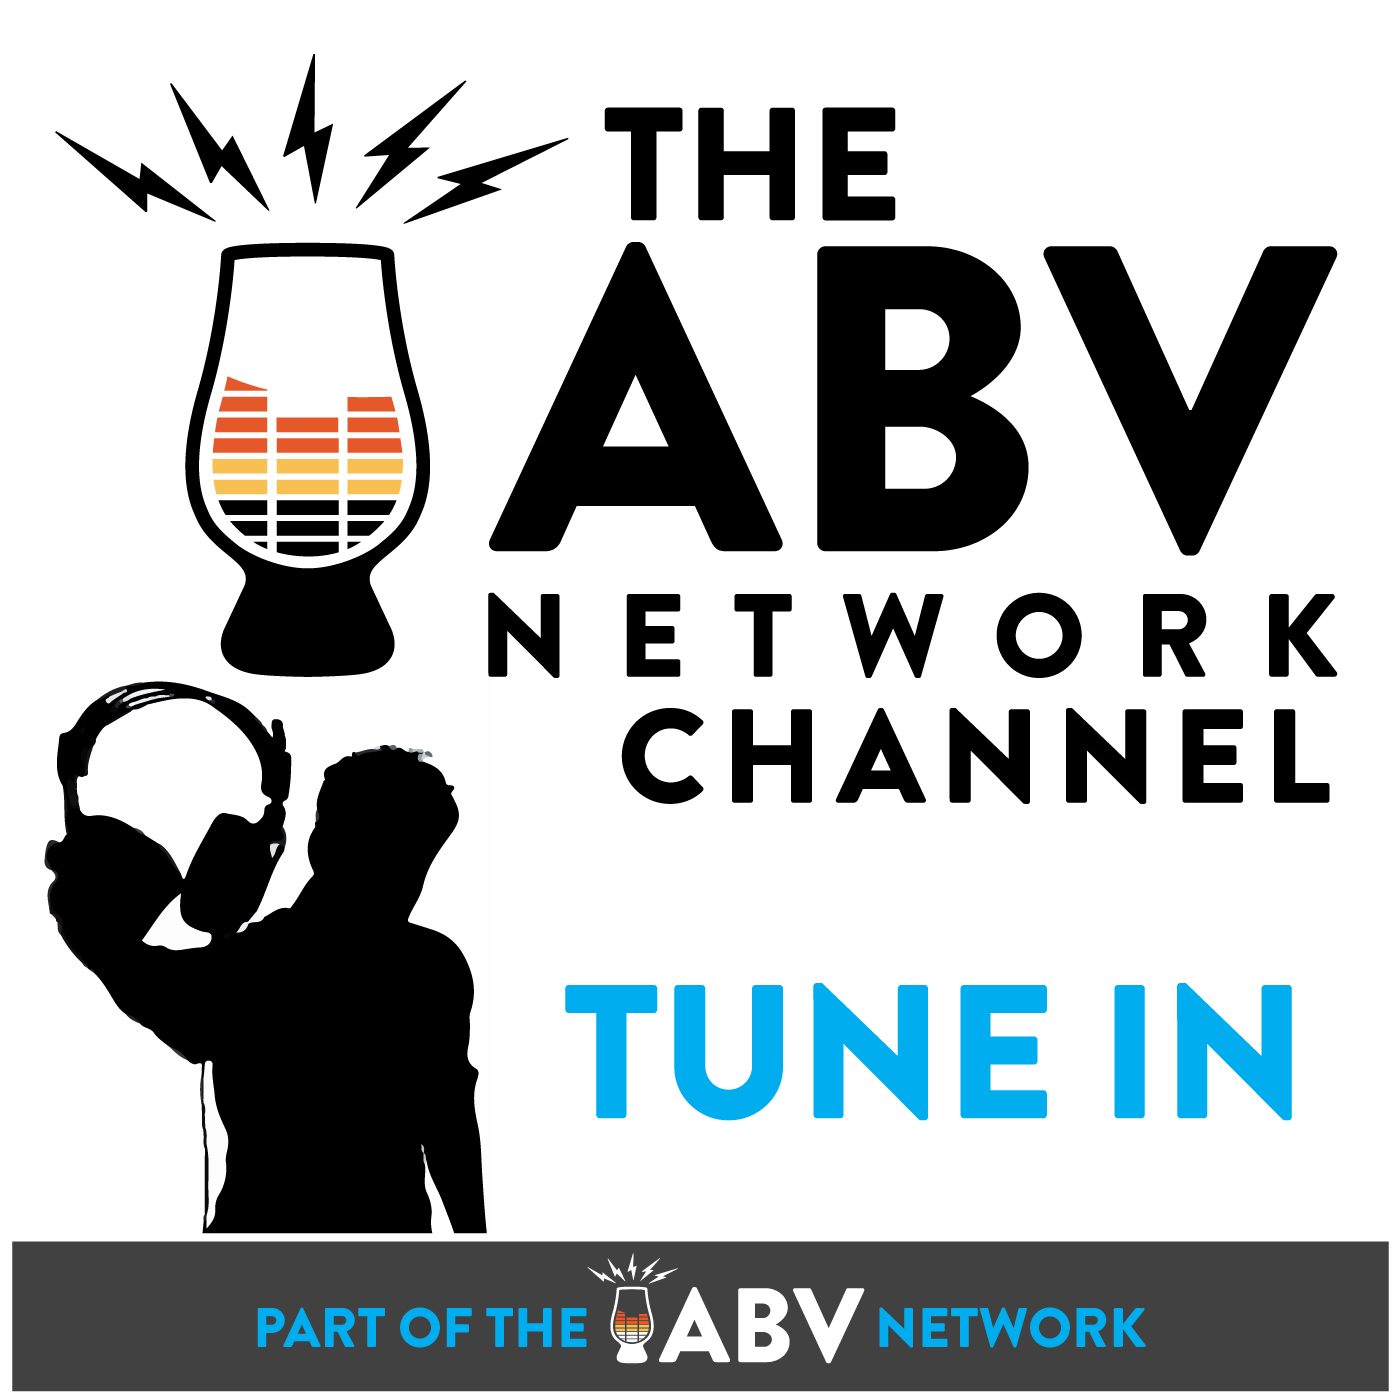 The ABV Network Channel show art